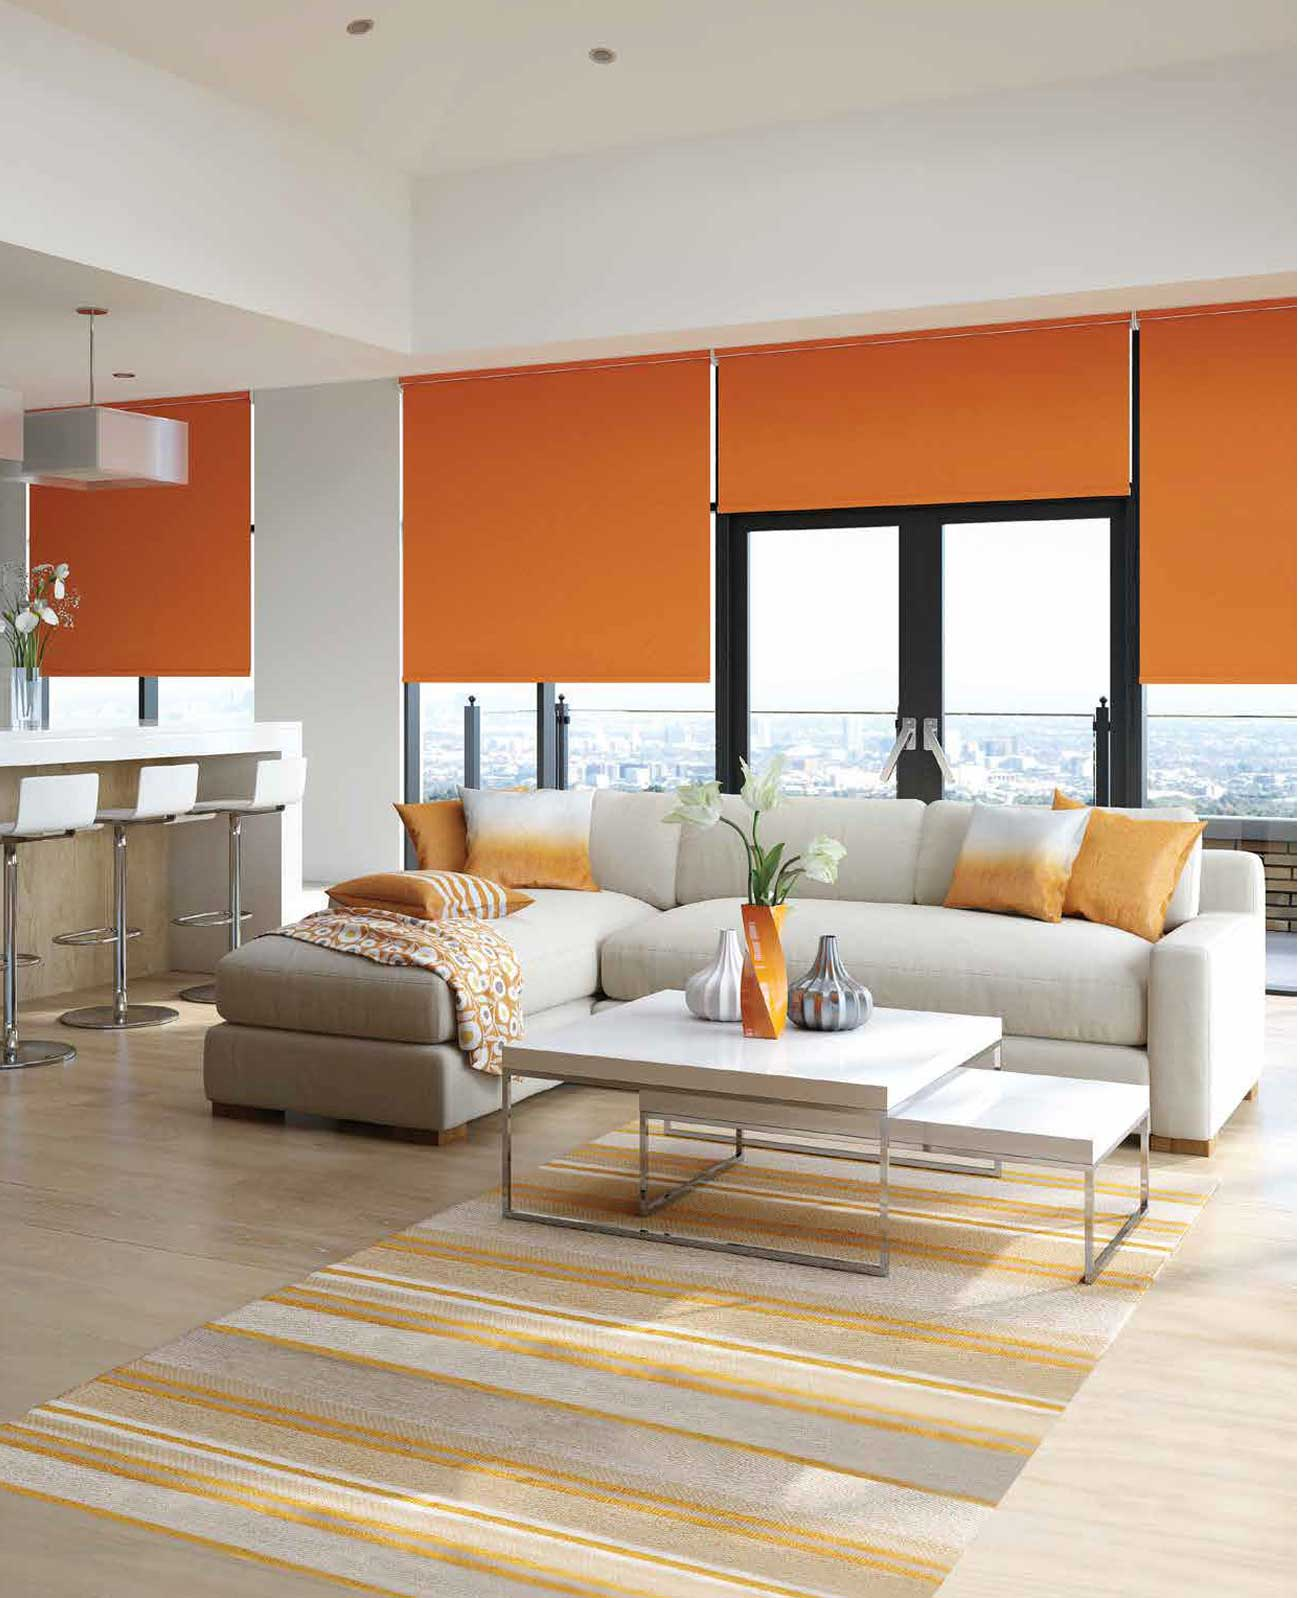 High Quality Motorised Blinds Supplier in Lurgan, Northern Ireland - Apex Blinds